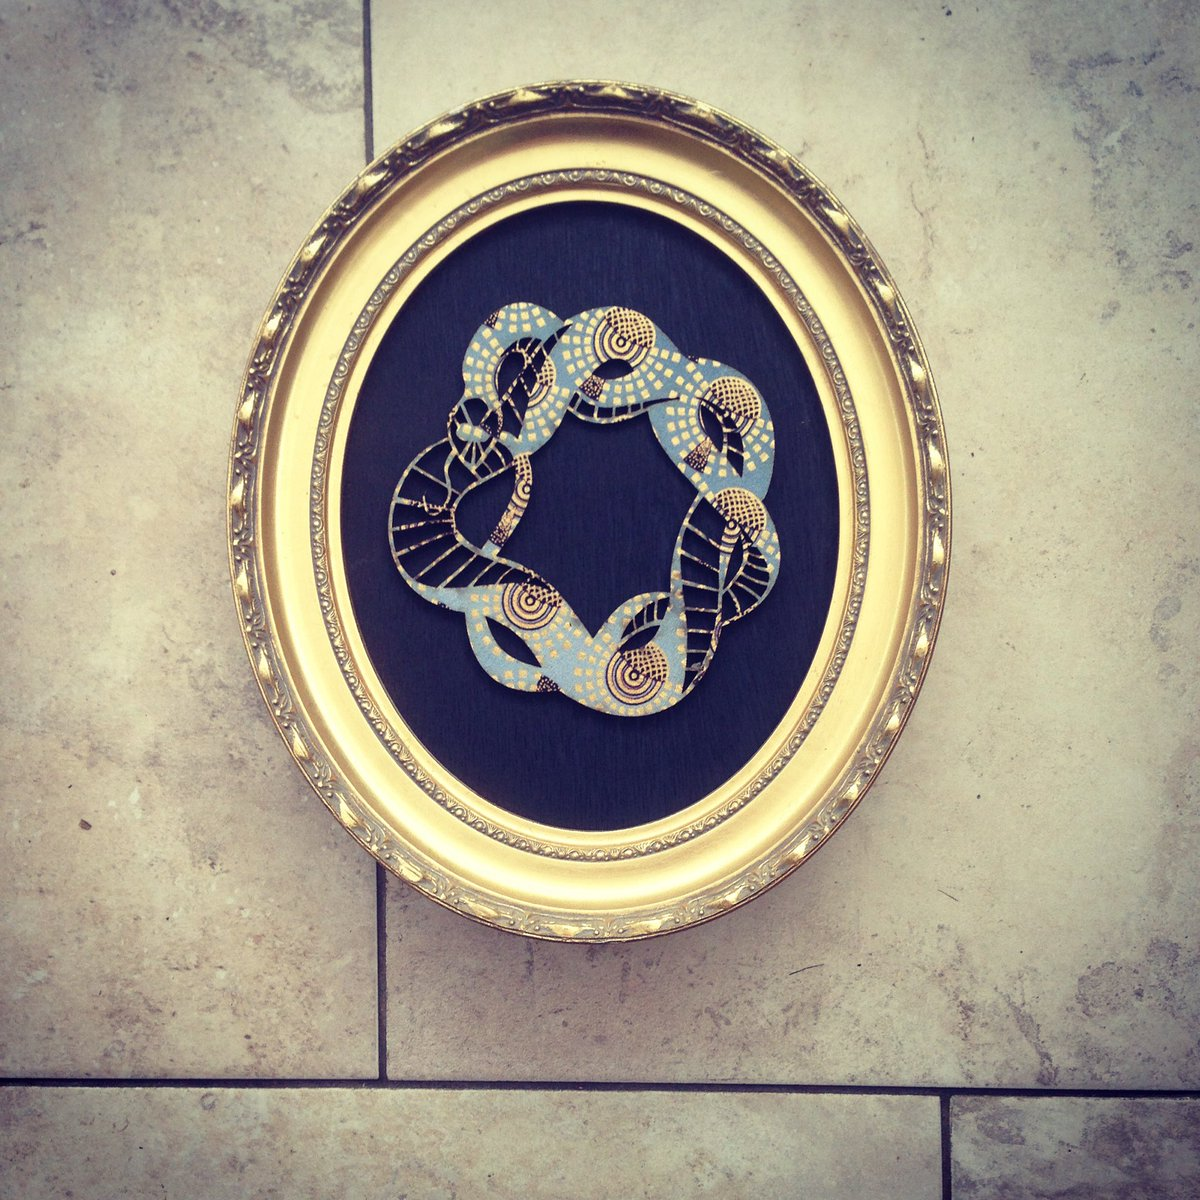 New for @makersmarketmcr Sunday at the #northernquarter OUROBOROS: a rebirth symbol of a snake eating itself cut from African wax fabric vintage frame http://www.davidrycroft.co.uk  #tattoo #ouroborostattoo #vintage #art #homedecor #handmadepic.twitter.com/tcX7dP3tvG